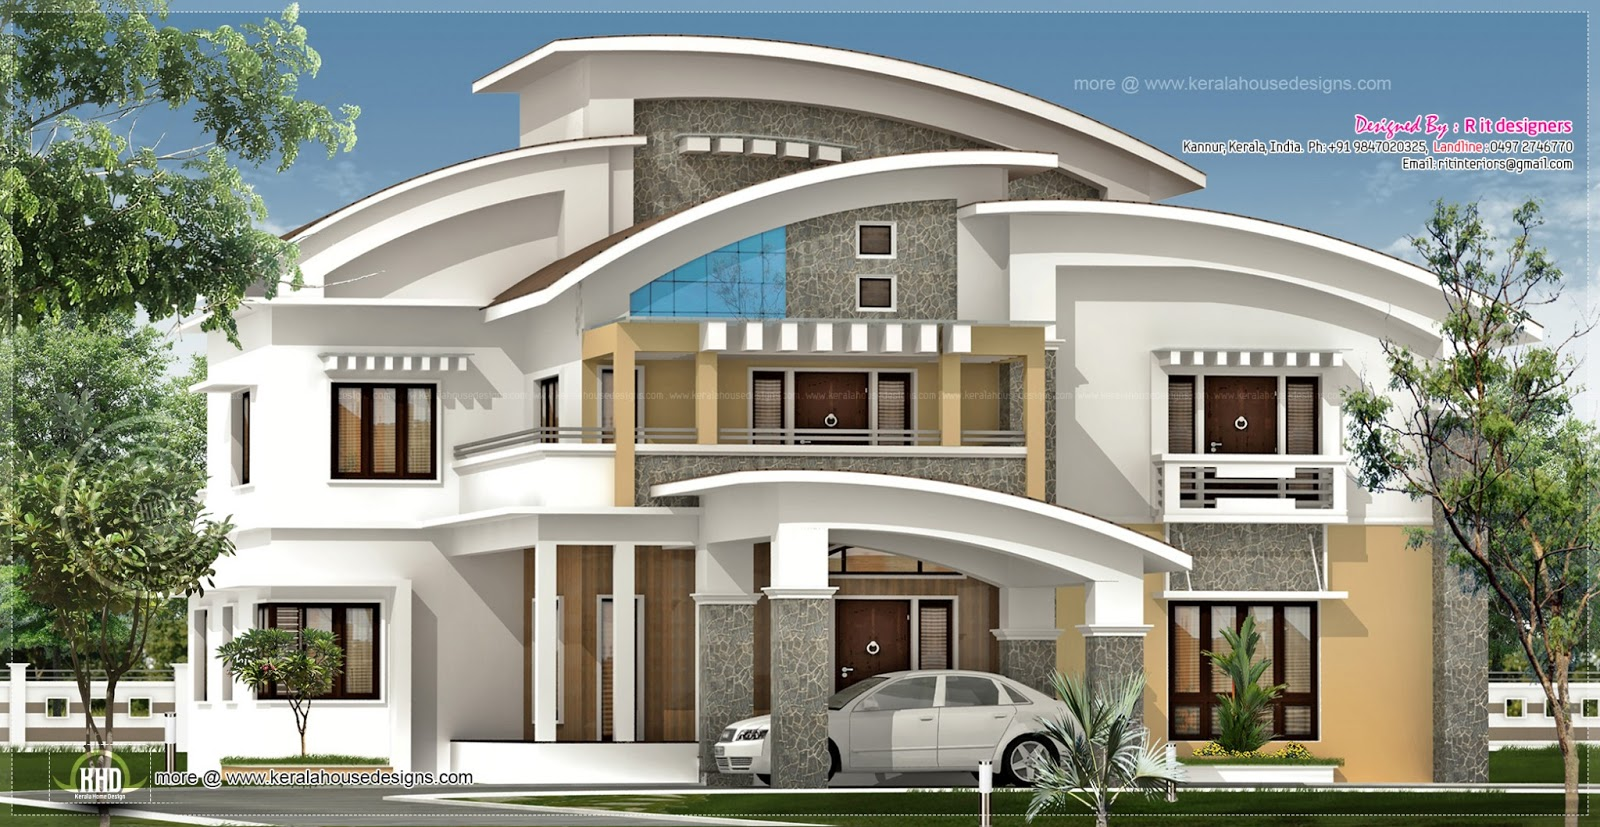 Luxury duplex plans with interior photos joy studio design gallery best design - Luxury duplex house plans ...